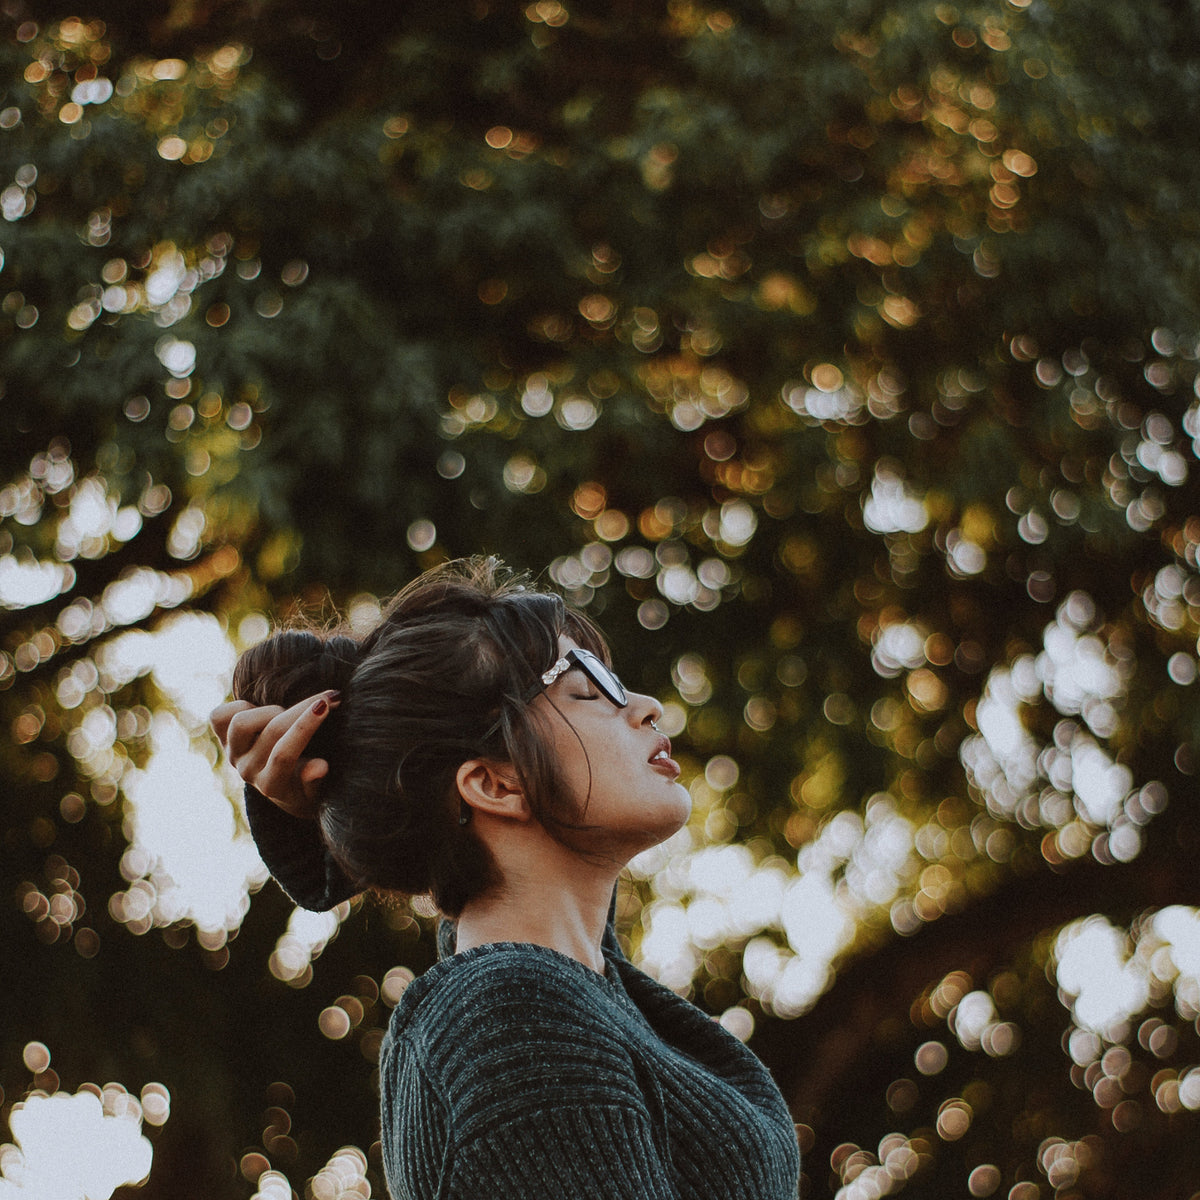 women wearing glasses breathing deeply sign of relief in a park